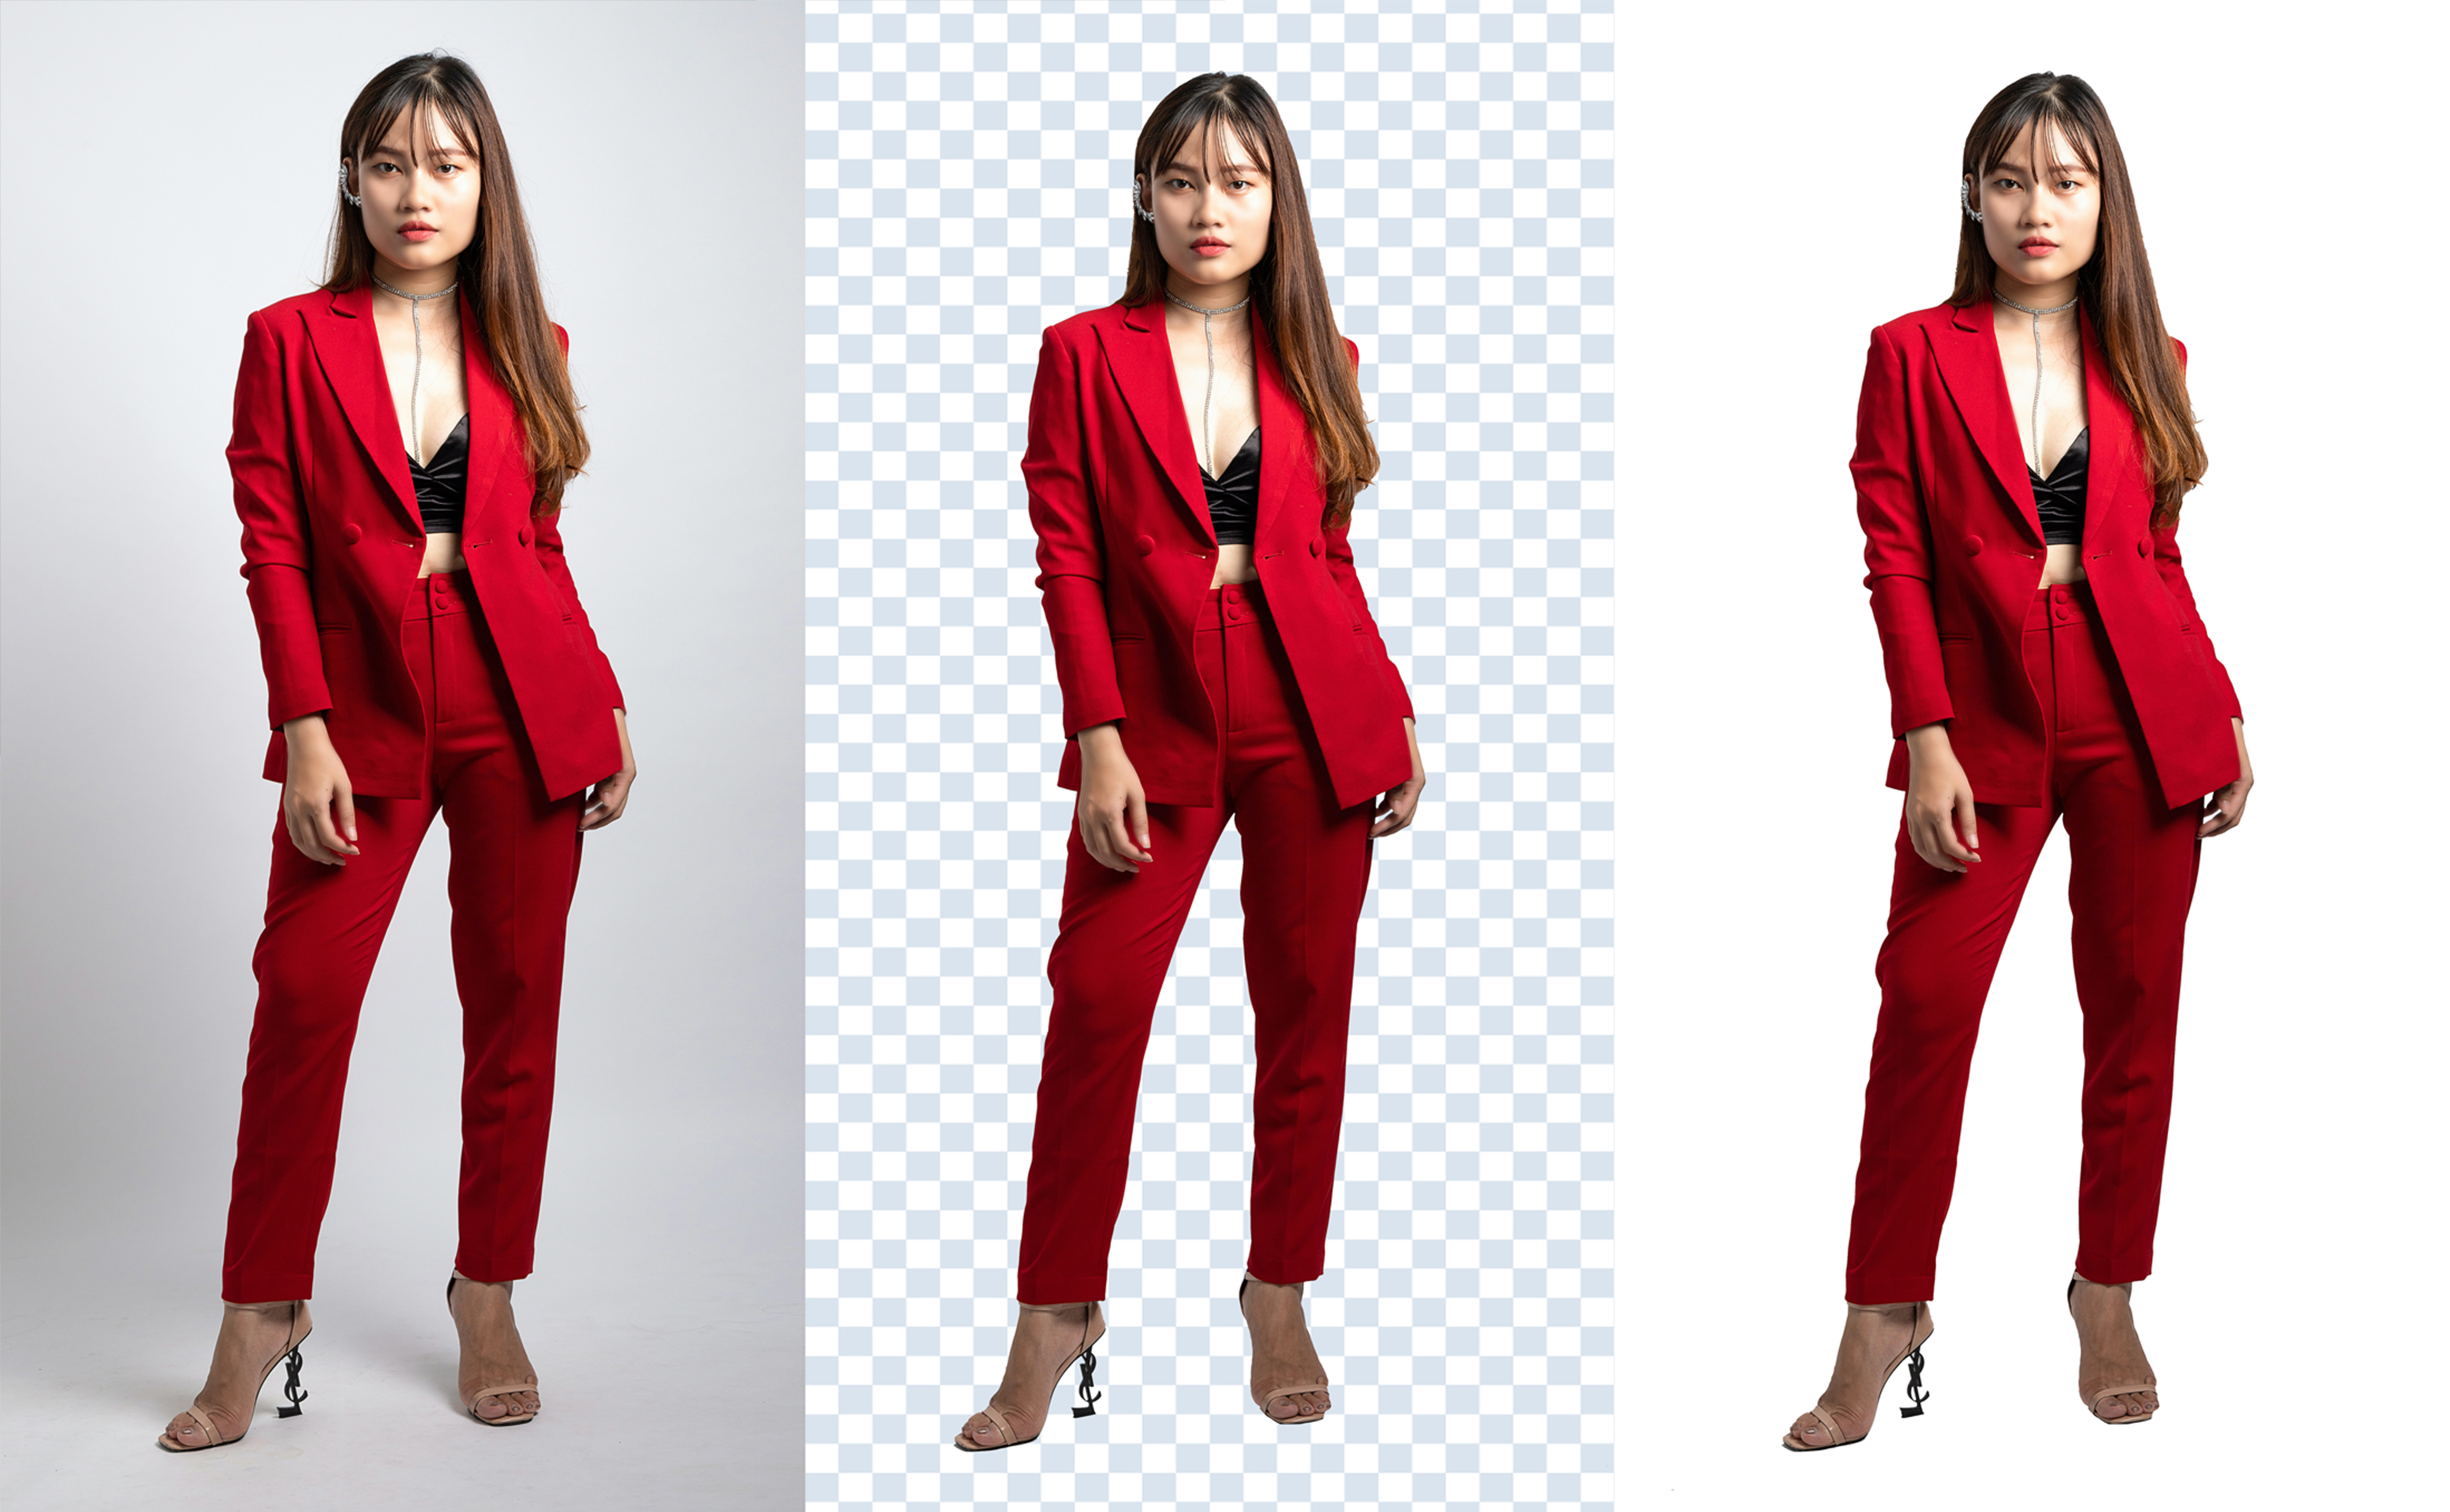 I will do background remove for amazon listing photos